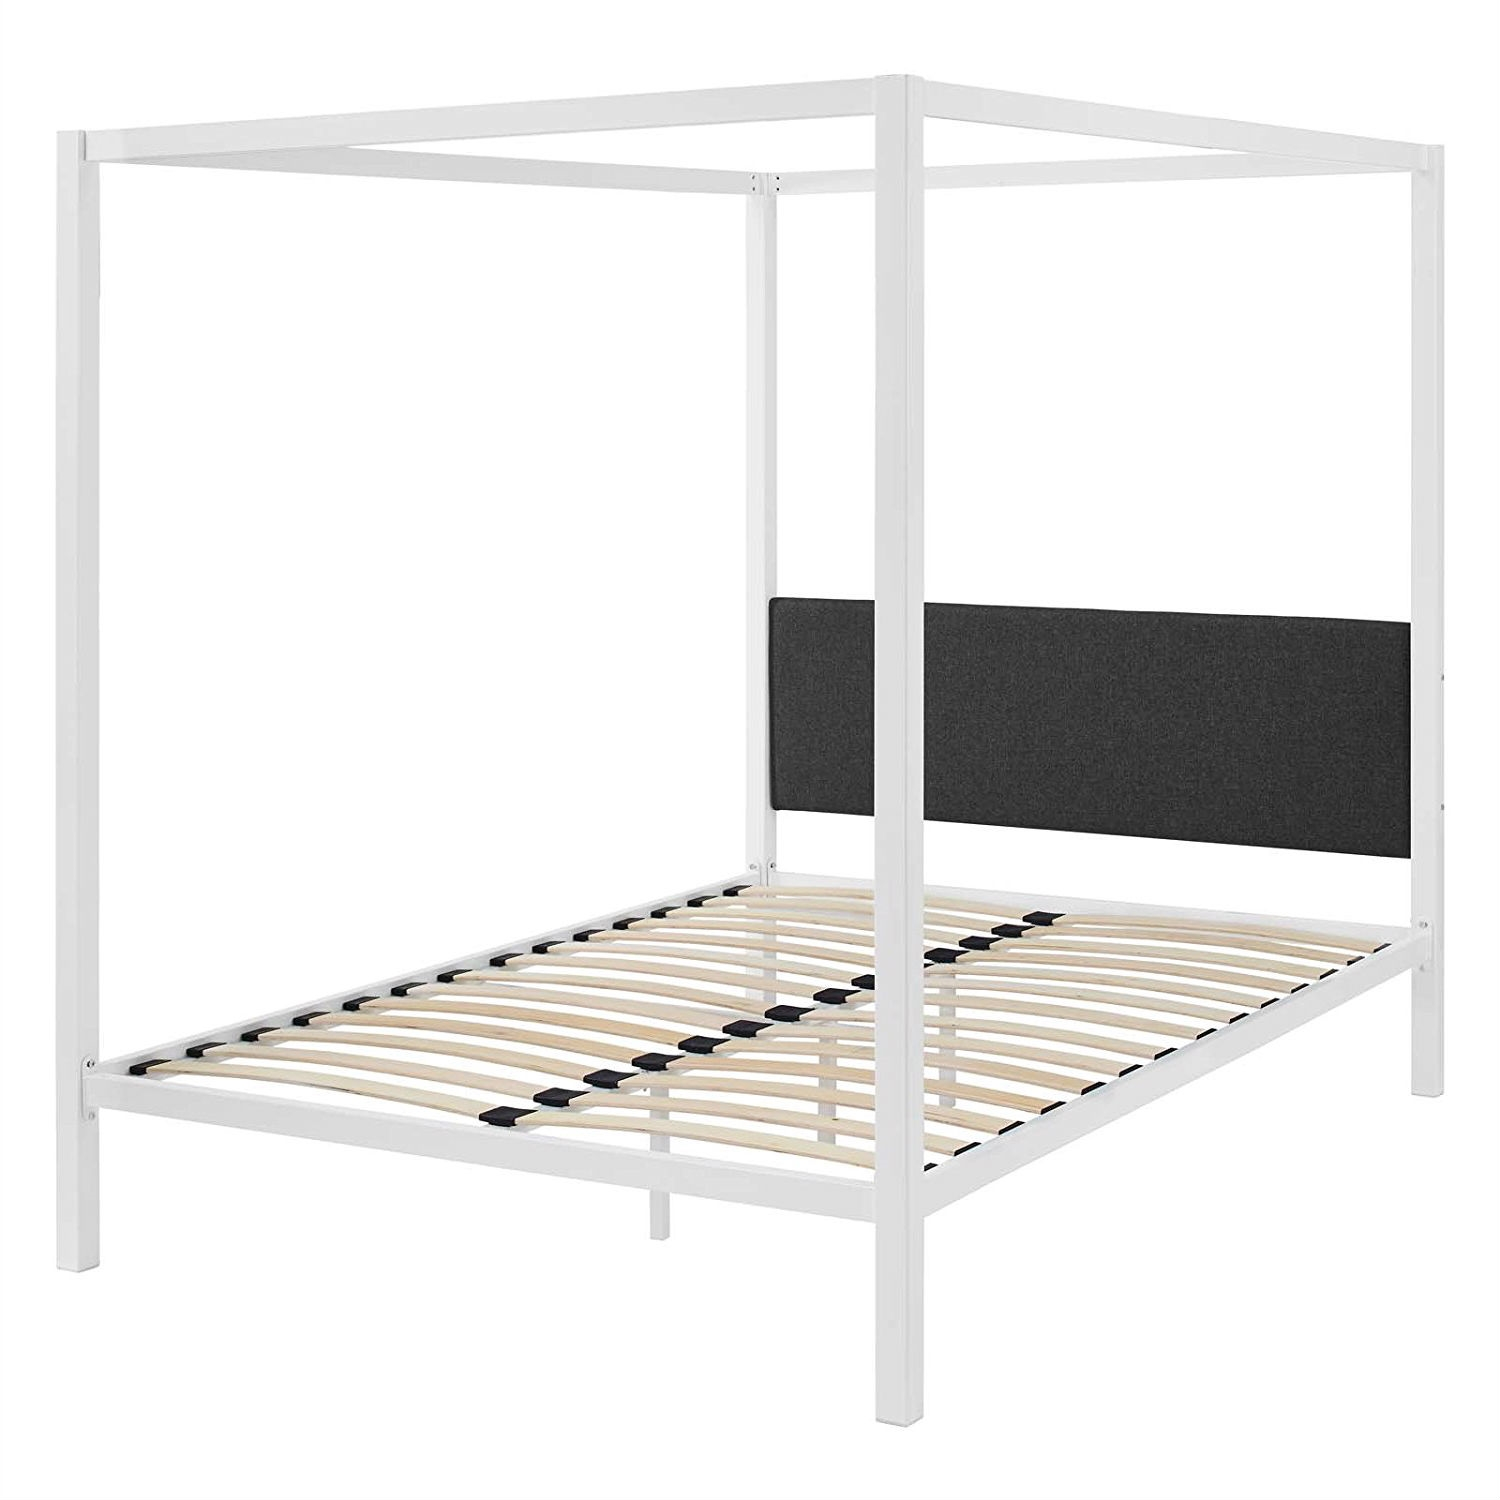 Queen Size White Metal Canopy Bed Frame With Grey Fabric Upholstered Headboard Fastfurnishings Com